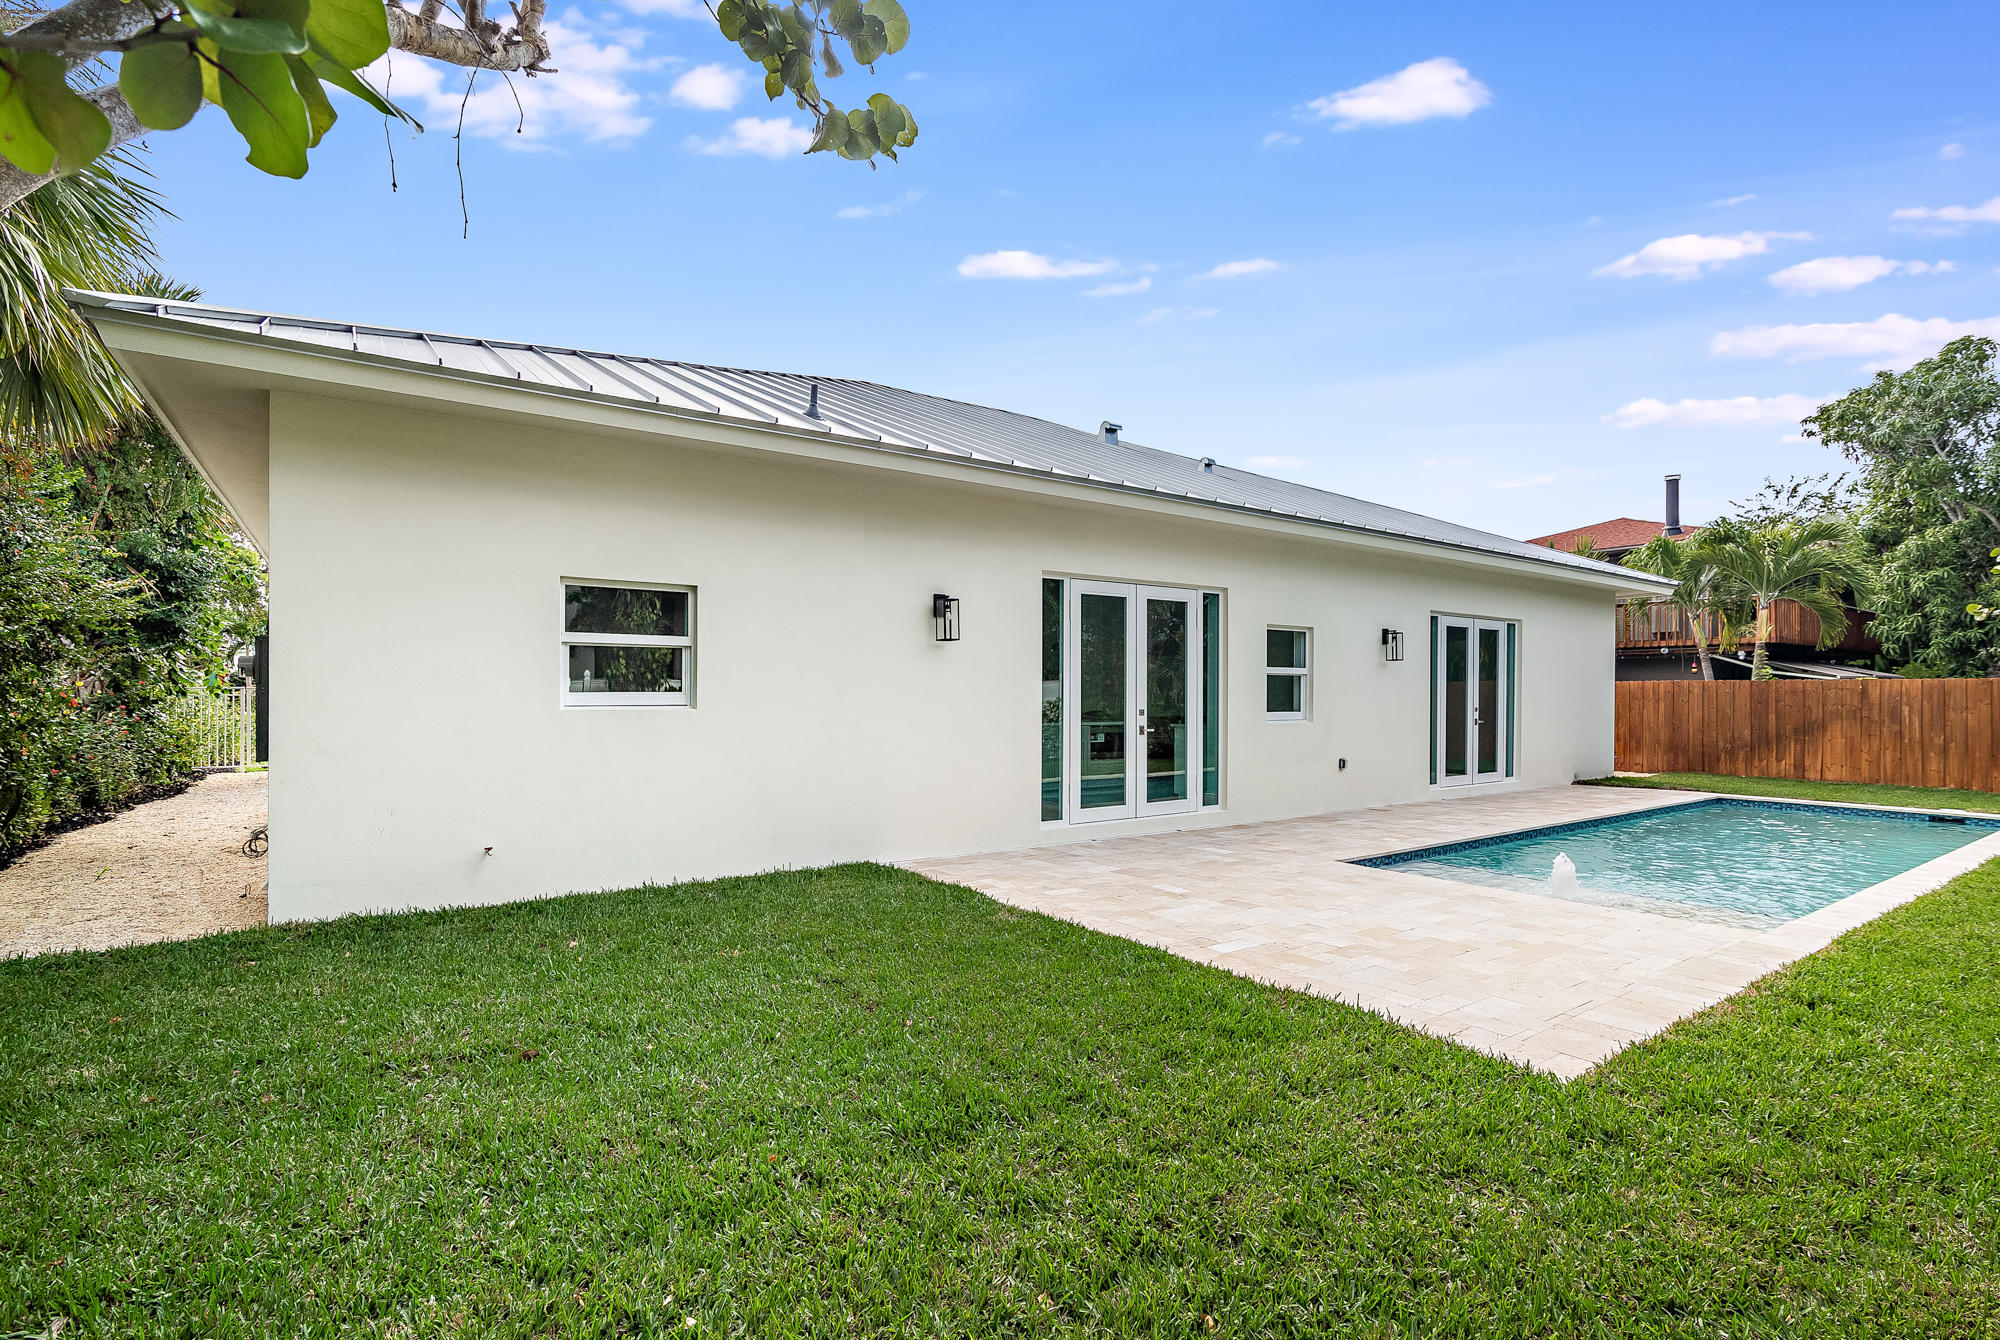 EDGEWATER HOMES FOR SALE